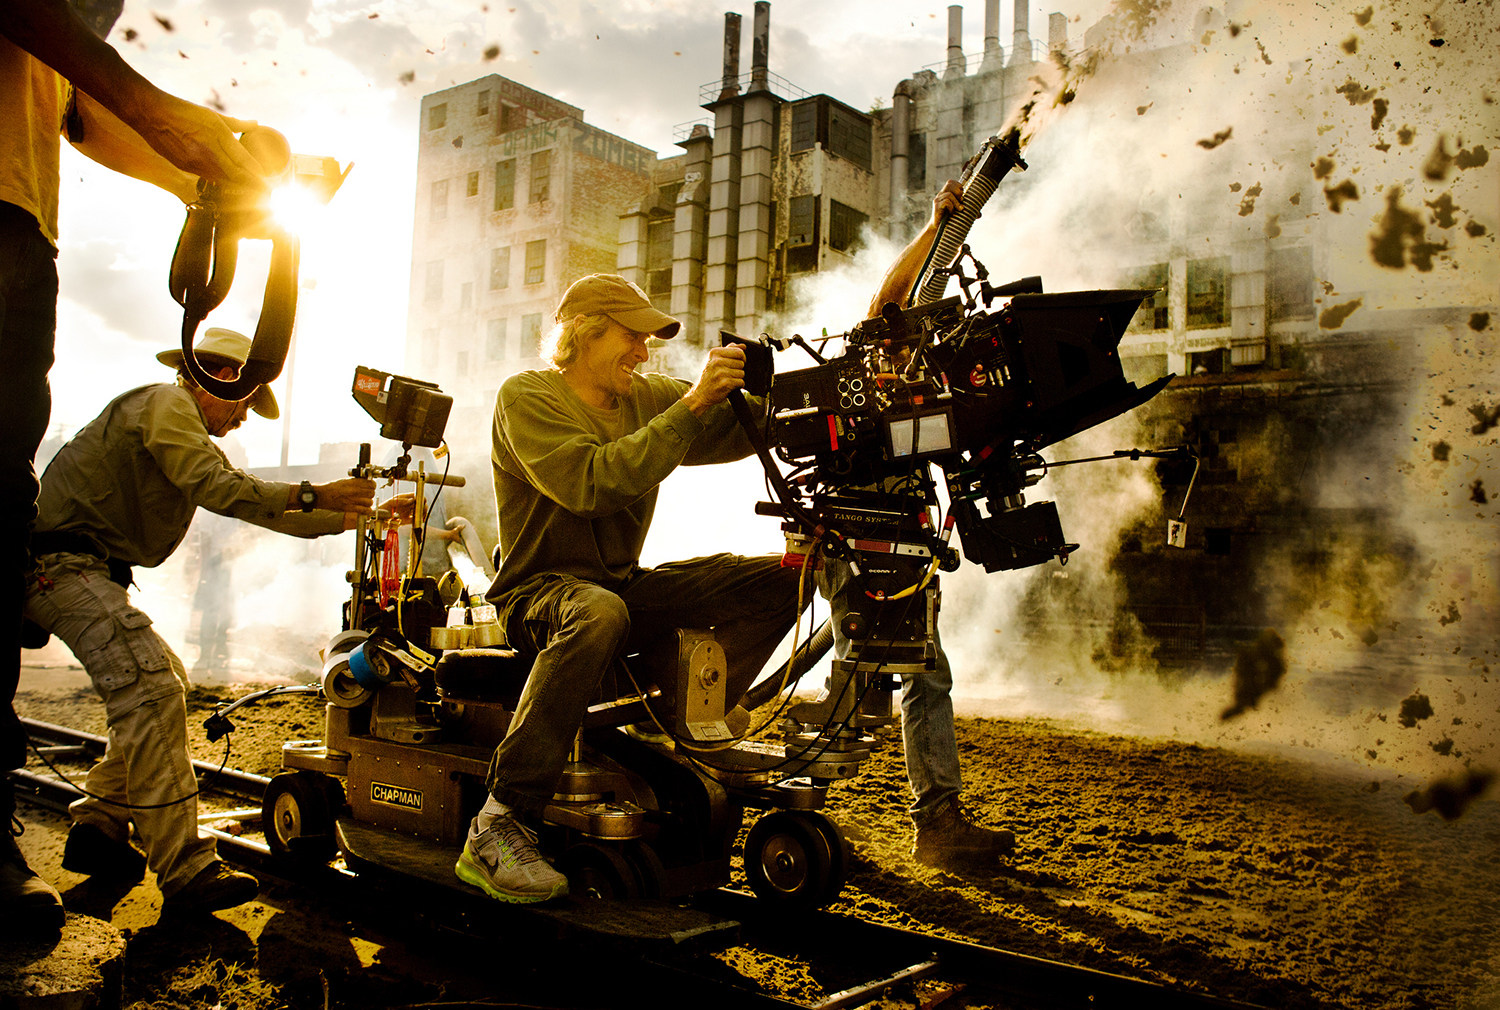 Michael Bay : Transformers: Age of Extinction Behind the Scenes